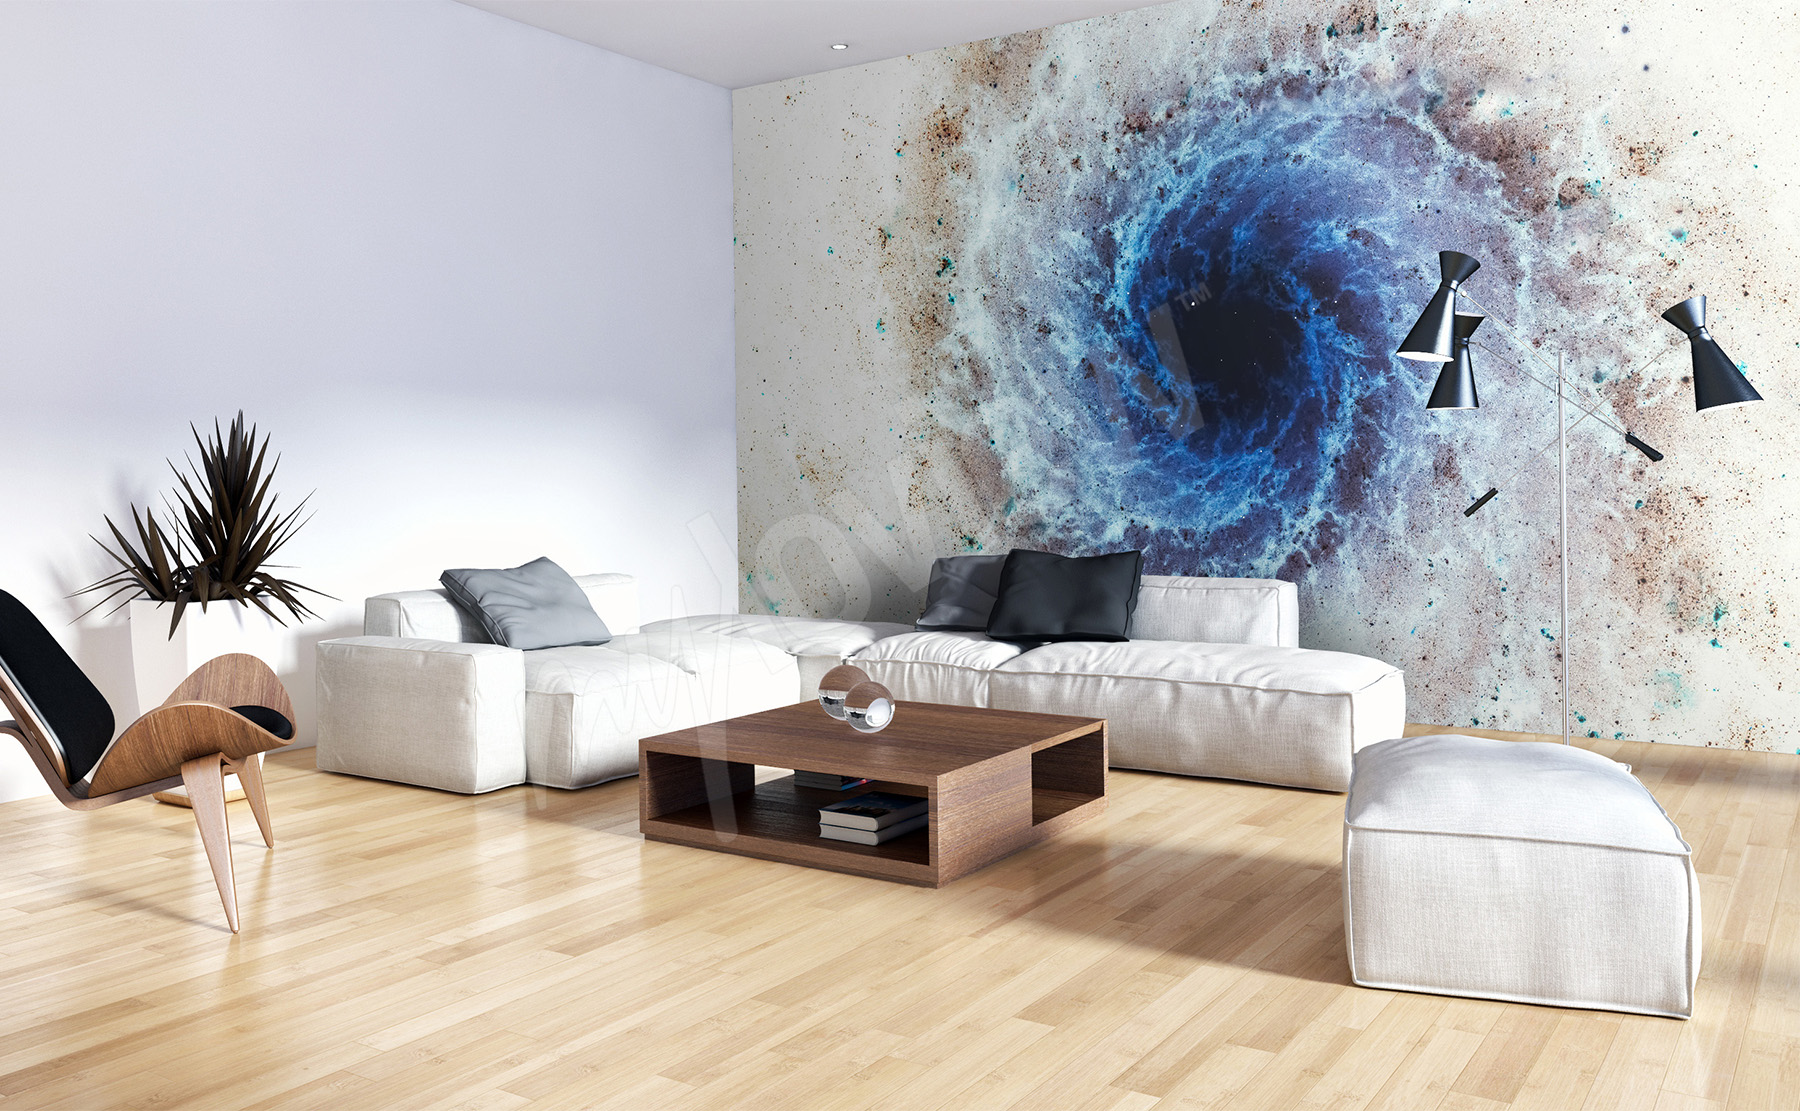 Go To The Product - Realistic Space Wallpapers For A Room , HD Wallpaper & Backgrounds